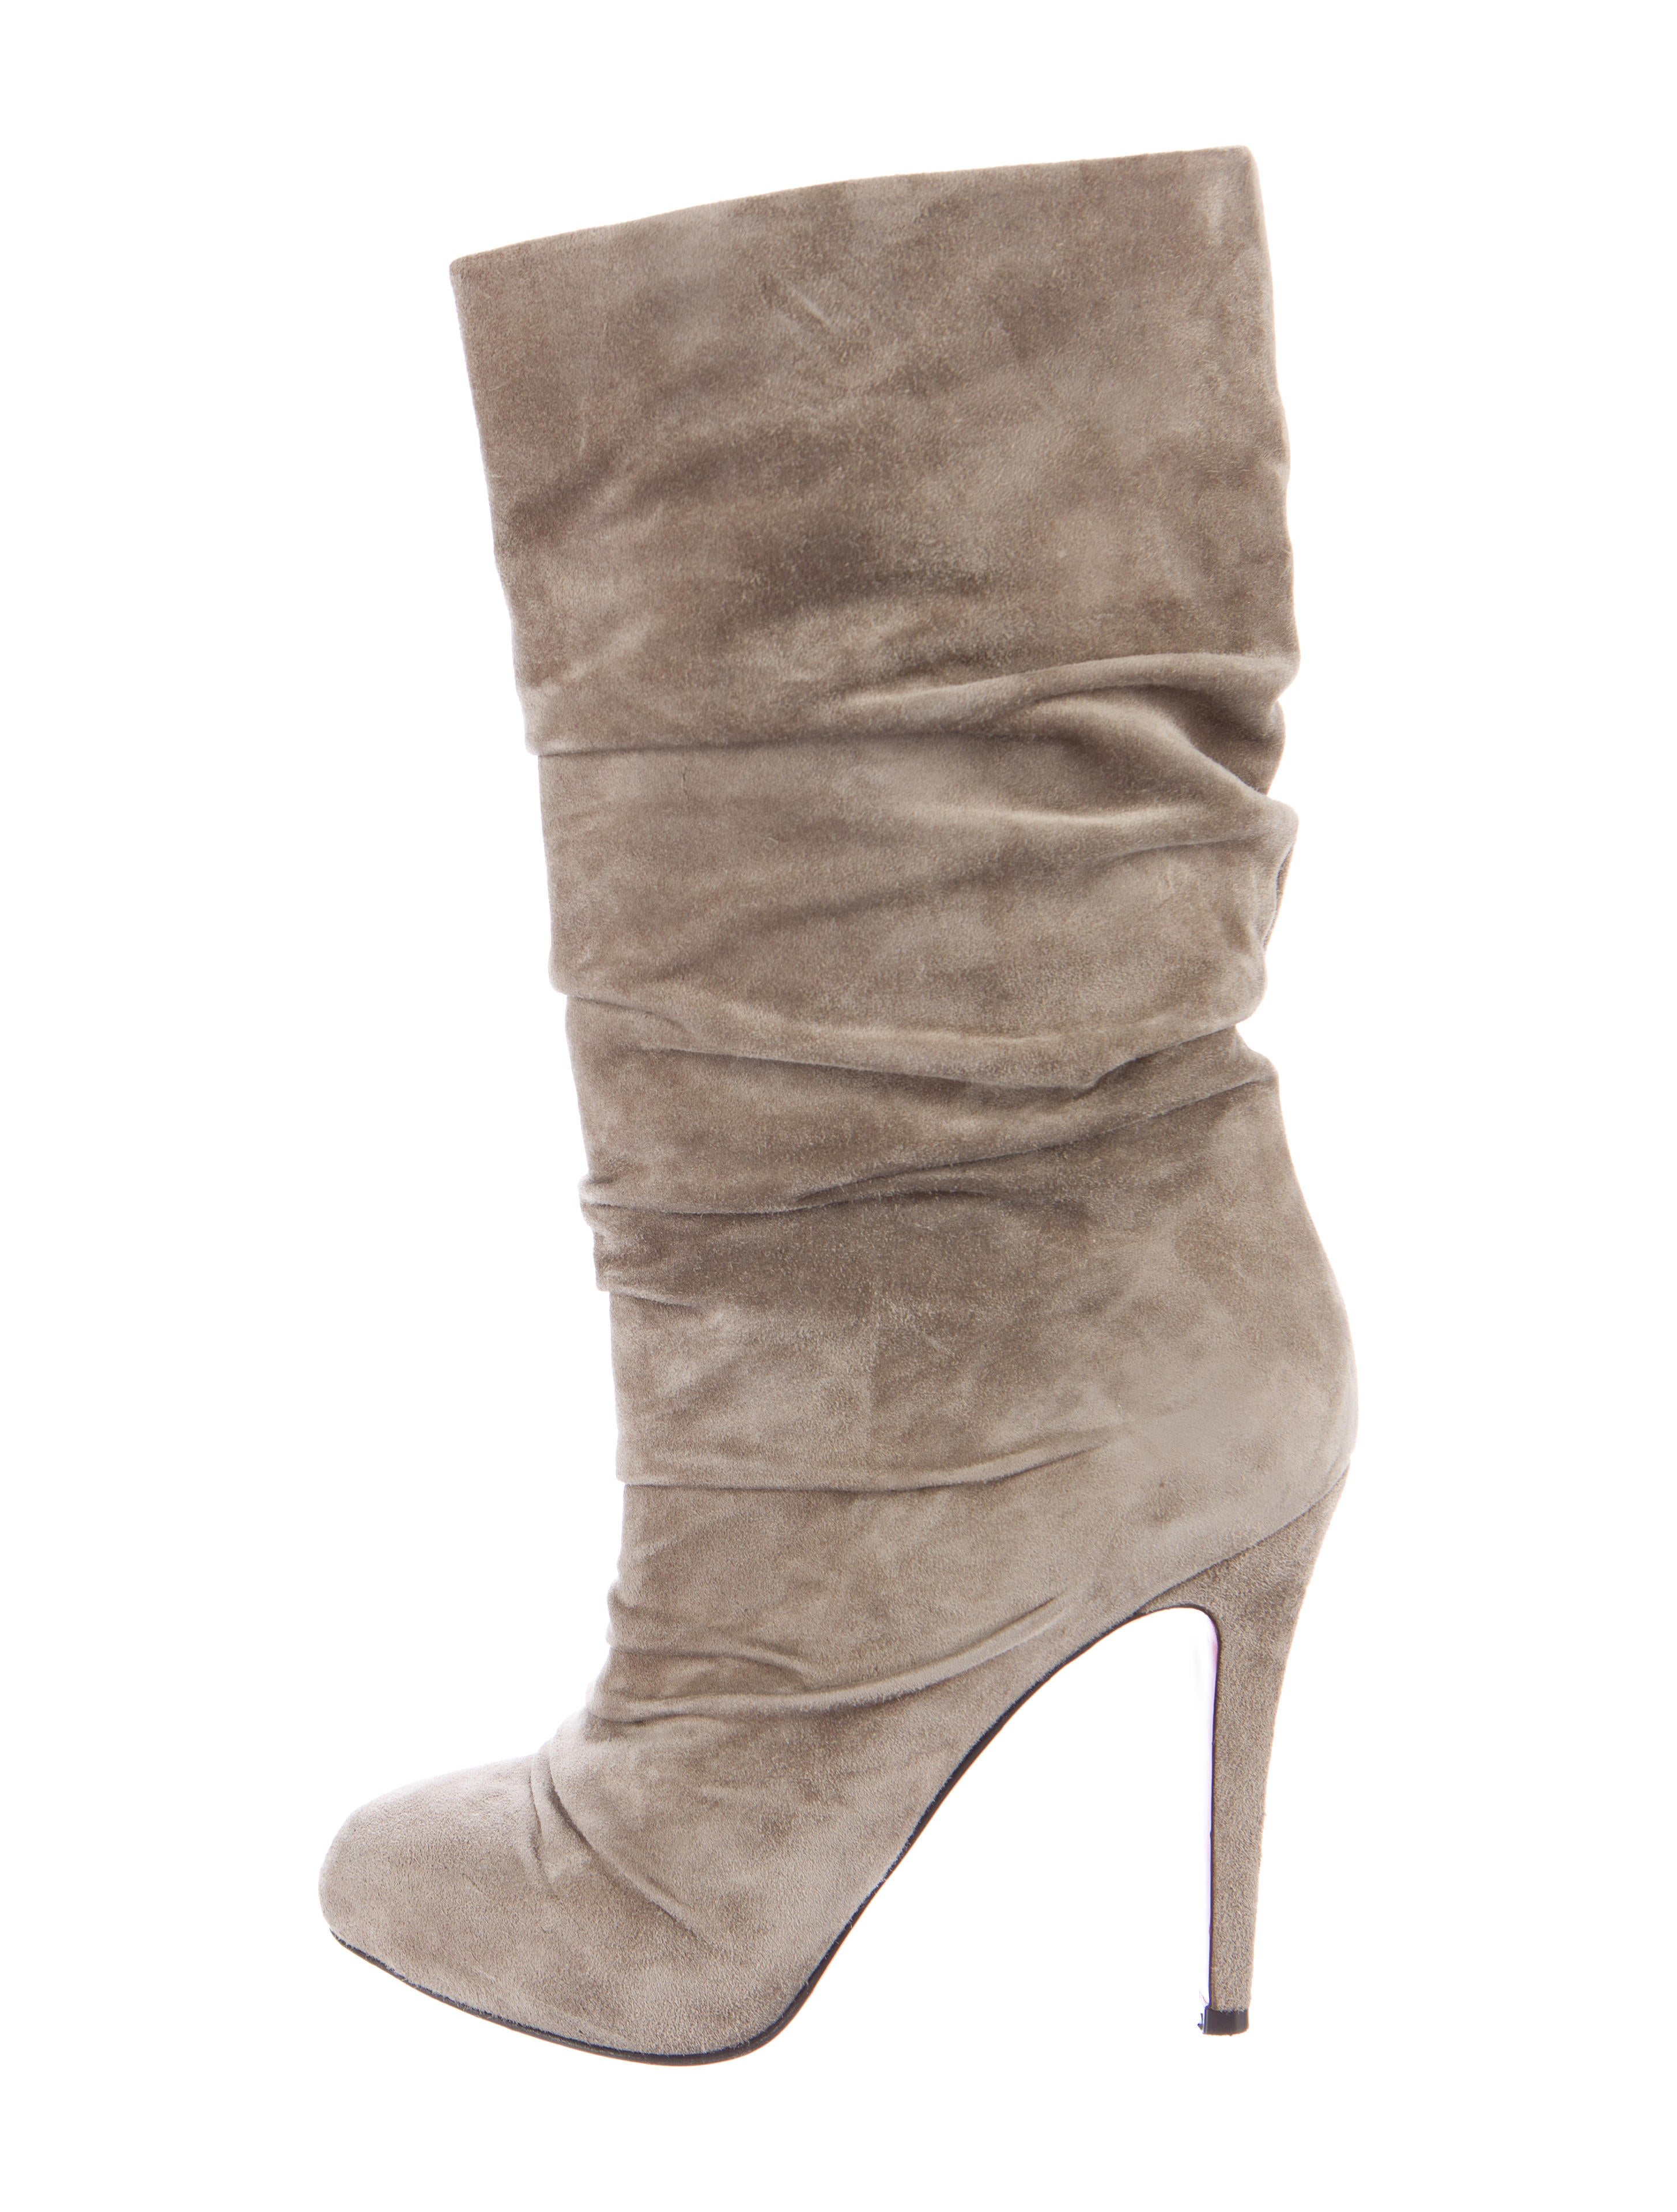 cheap online store discount wiki Christian Louboutin Suede Mid-Calf Boots visit sale online for cheap online cheap sale hot sale Zxz8Sr5lqz